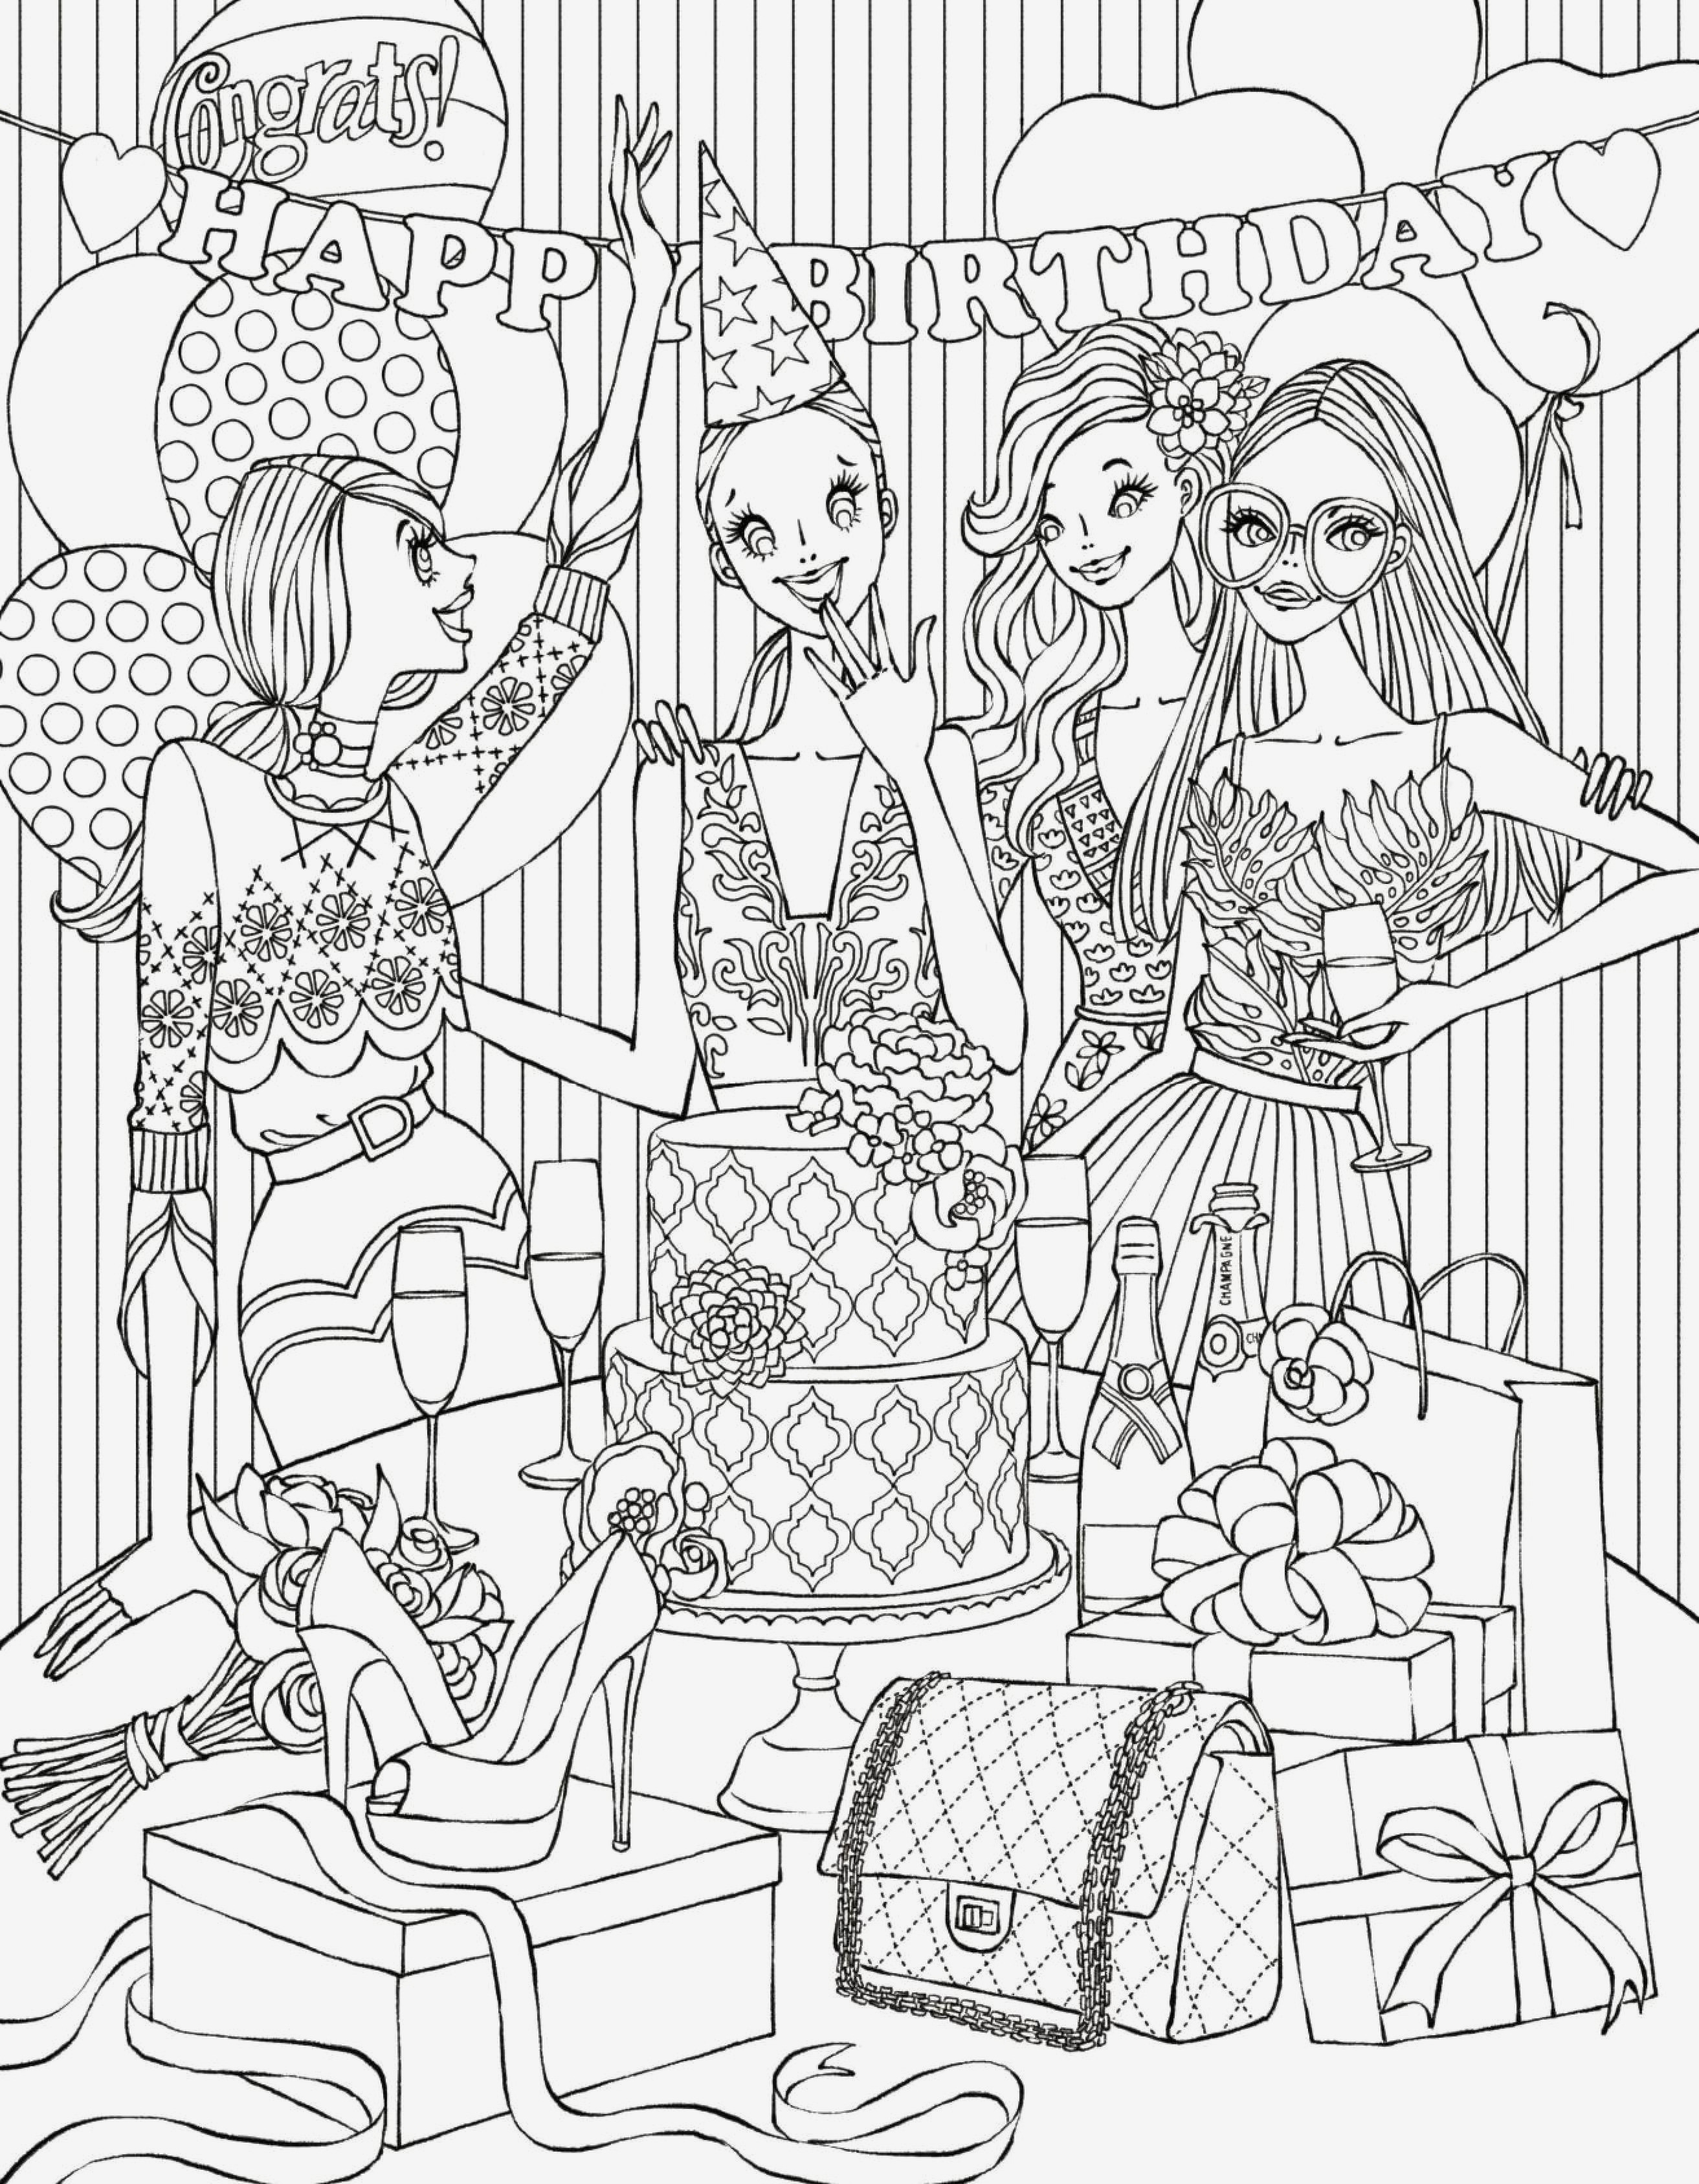 My Little Pony Pinkie Pie Ausmalbilder Neu Free Printable Ever after High Coloring Pages C A Cupid Ever after Galerie